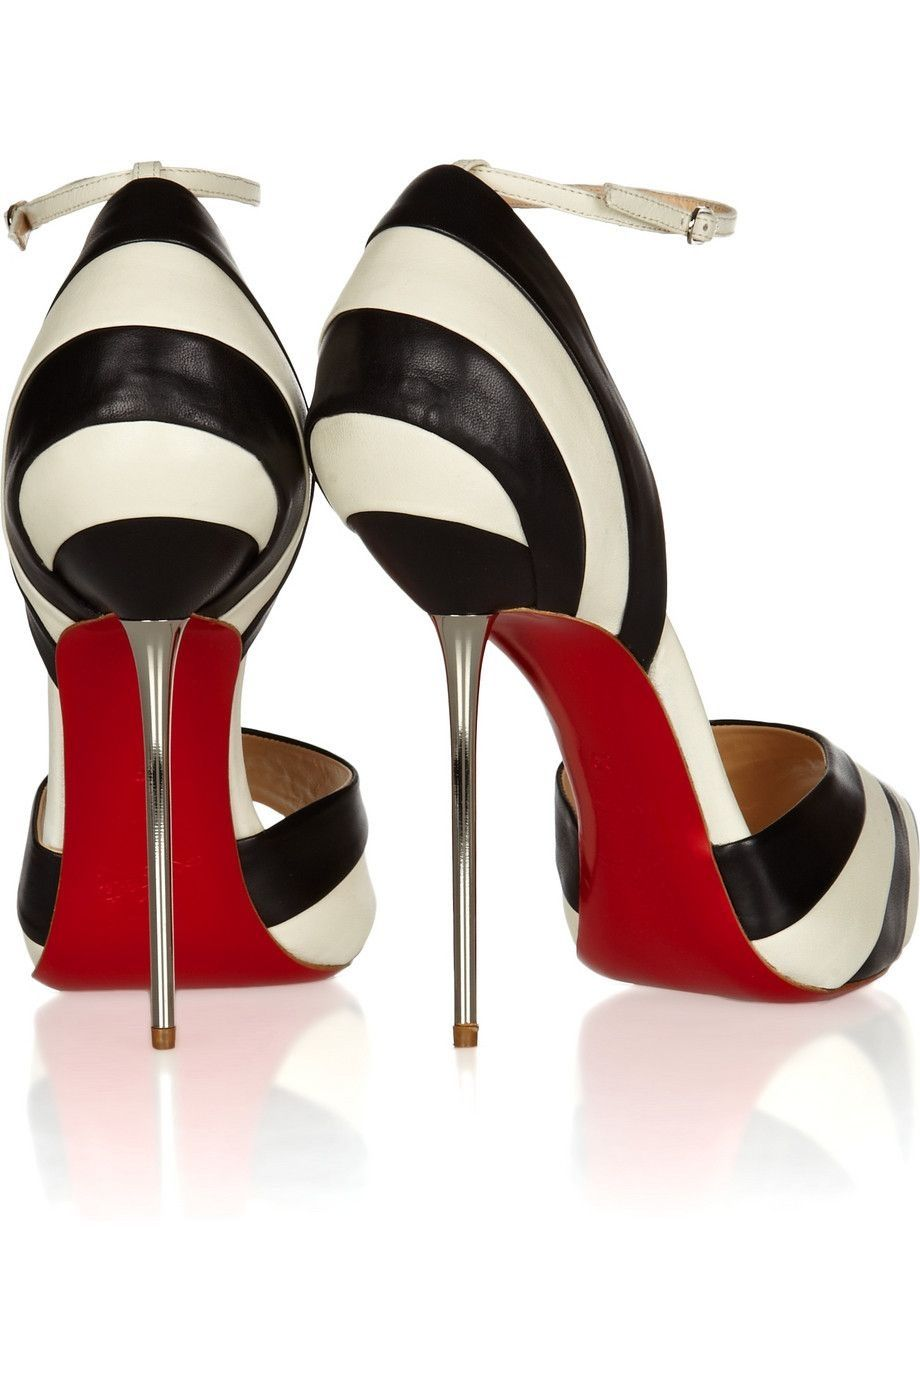 47779315a984 Christian Louboutin ~ Red Sole Leather Pumps